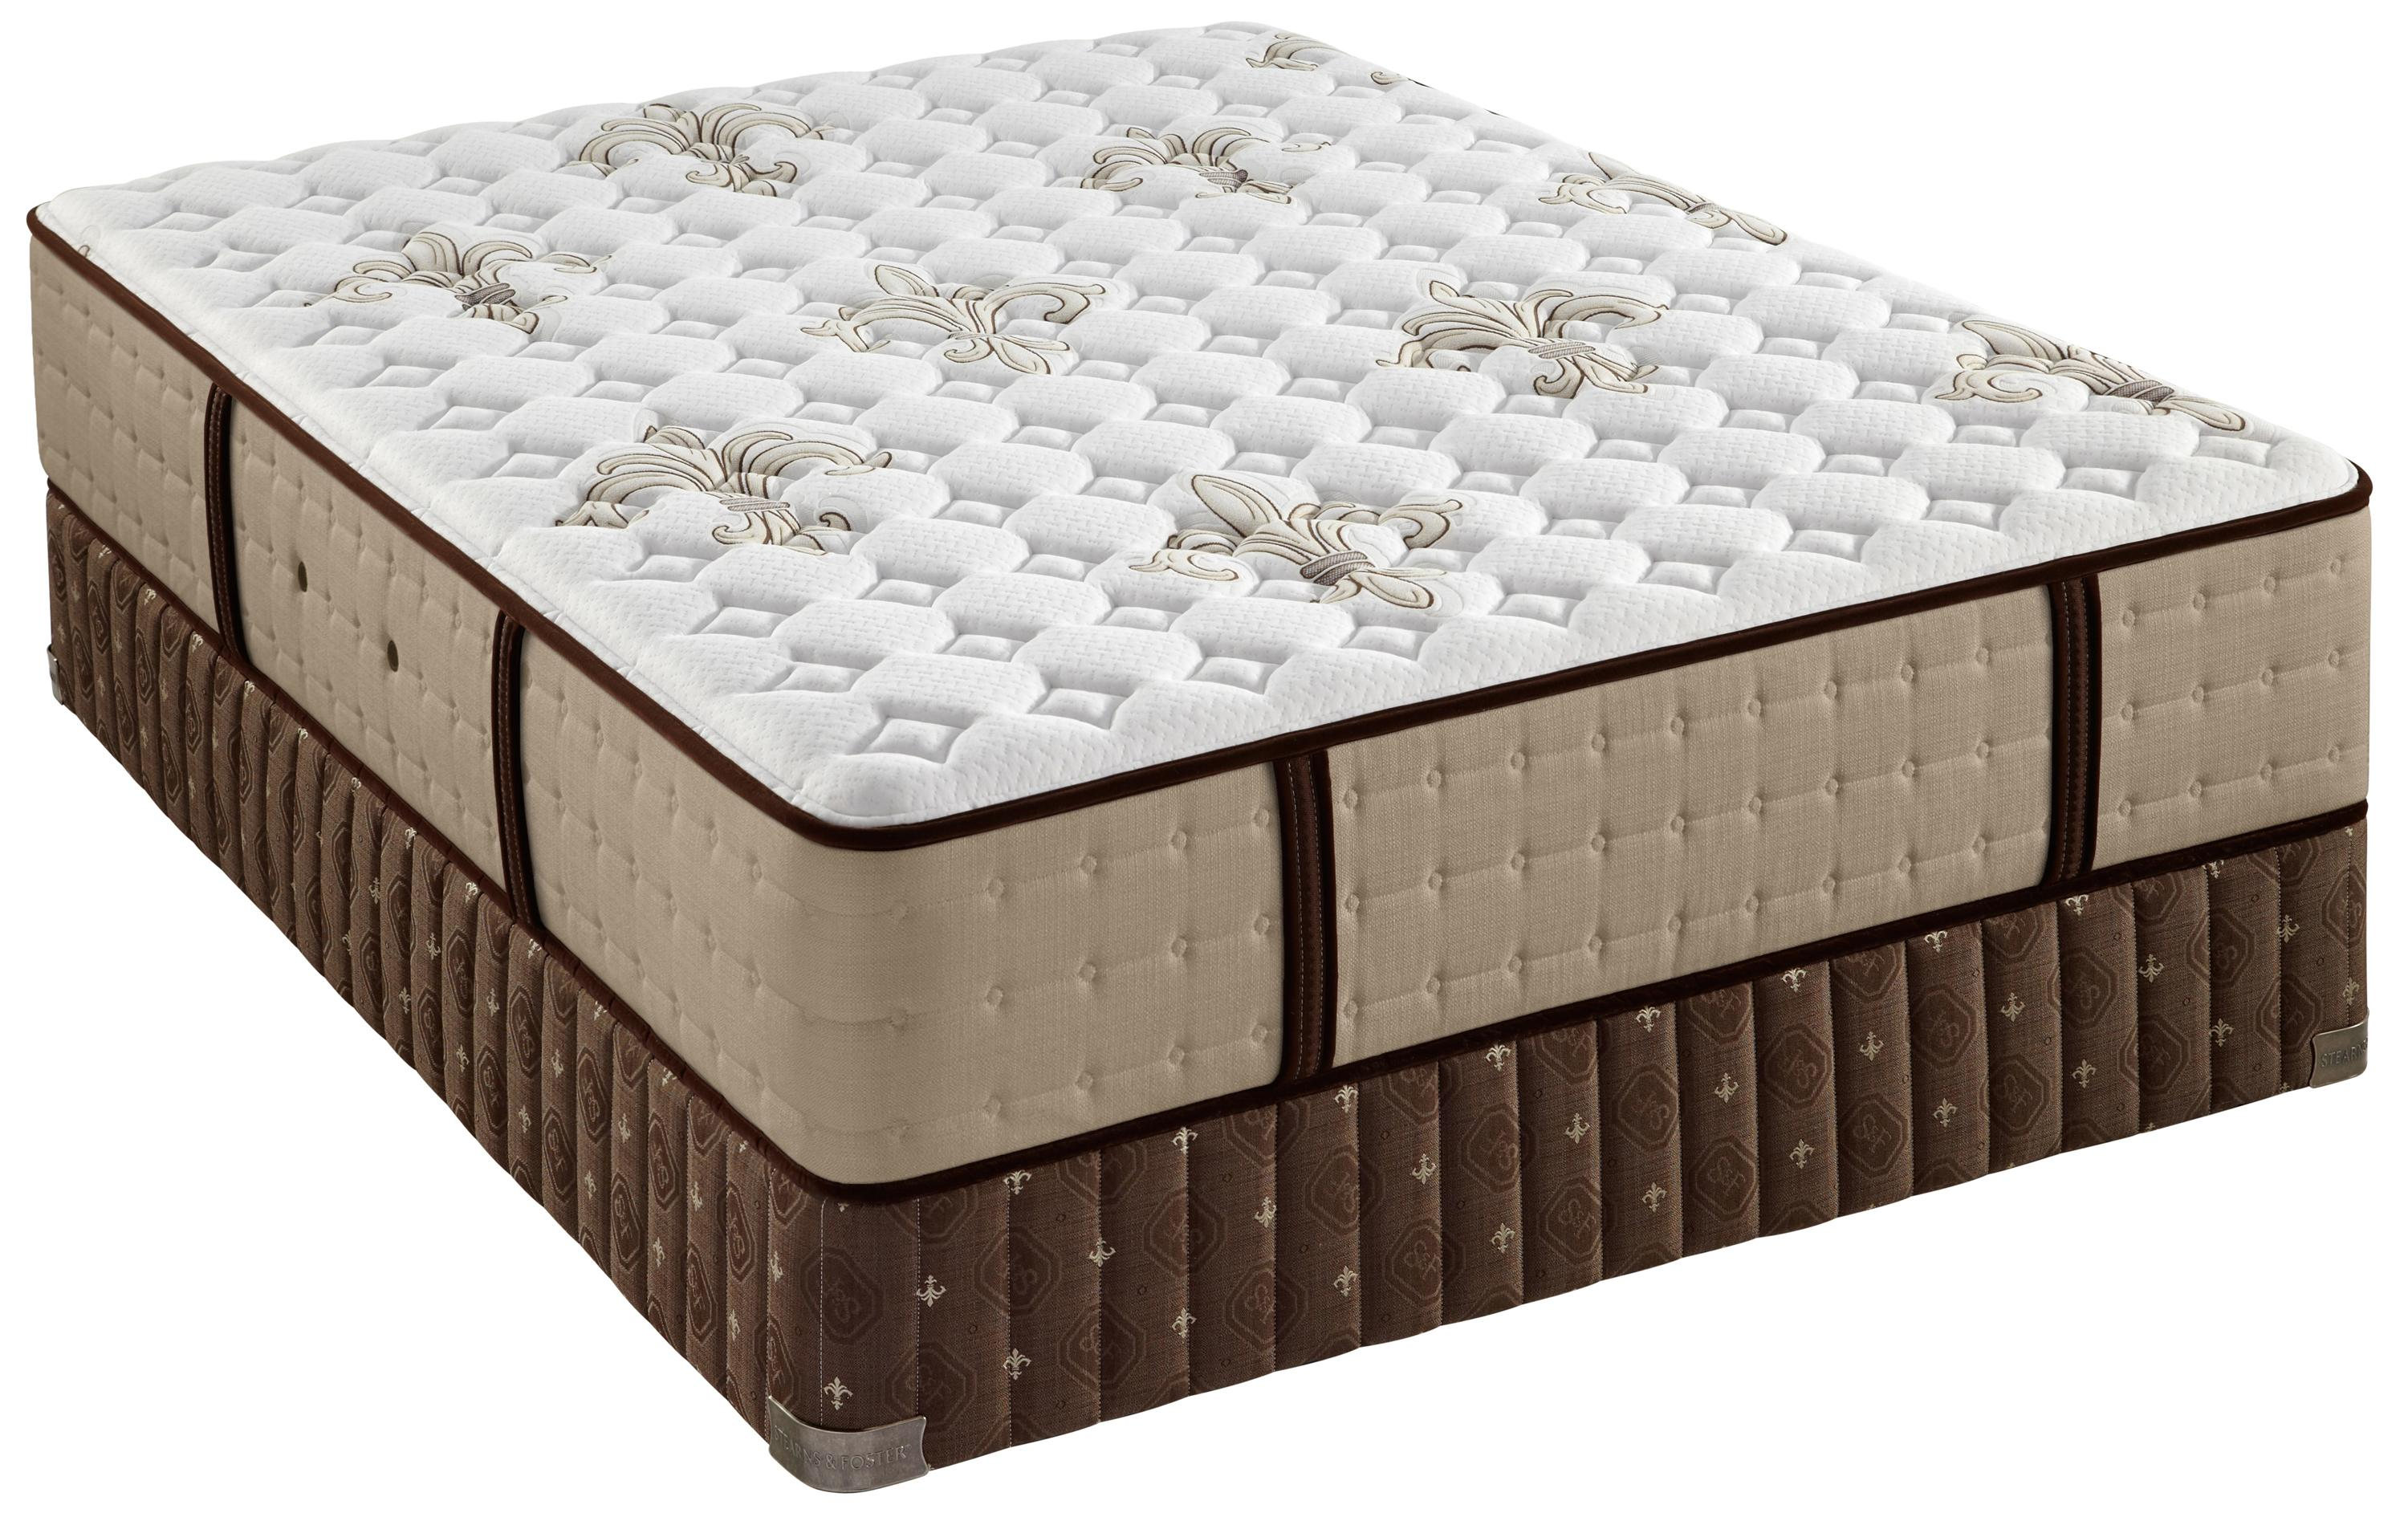 Stearns & Foster Friendfield King Ultra Firm Mattress - Item Number: UltraFirm-K